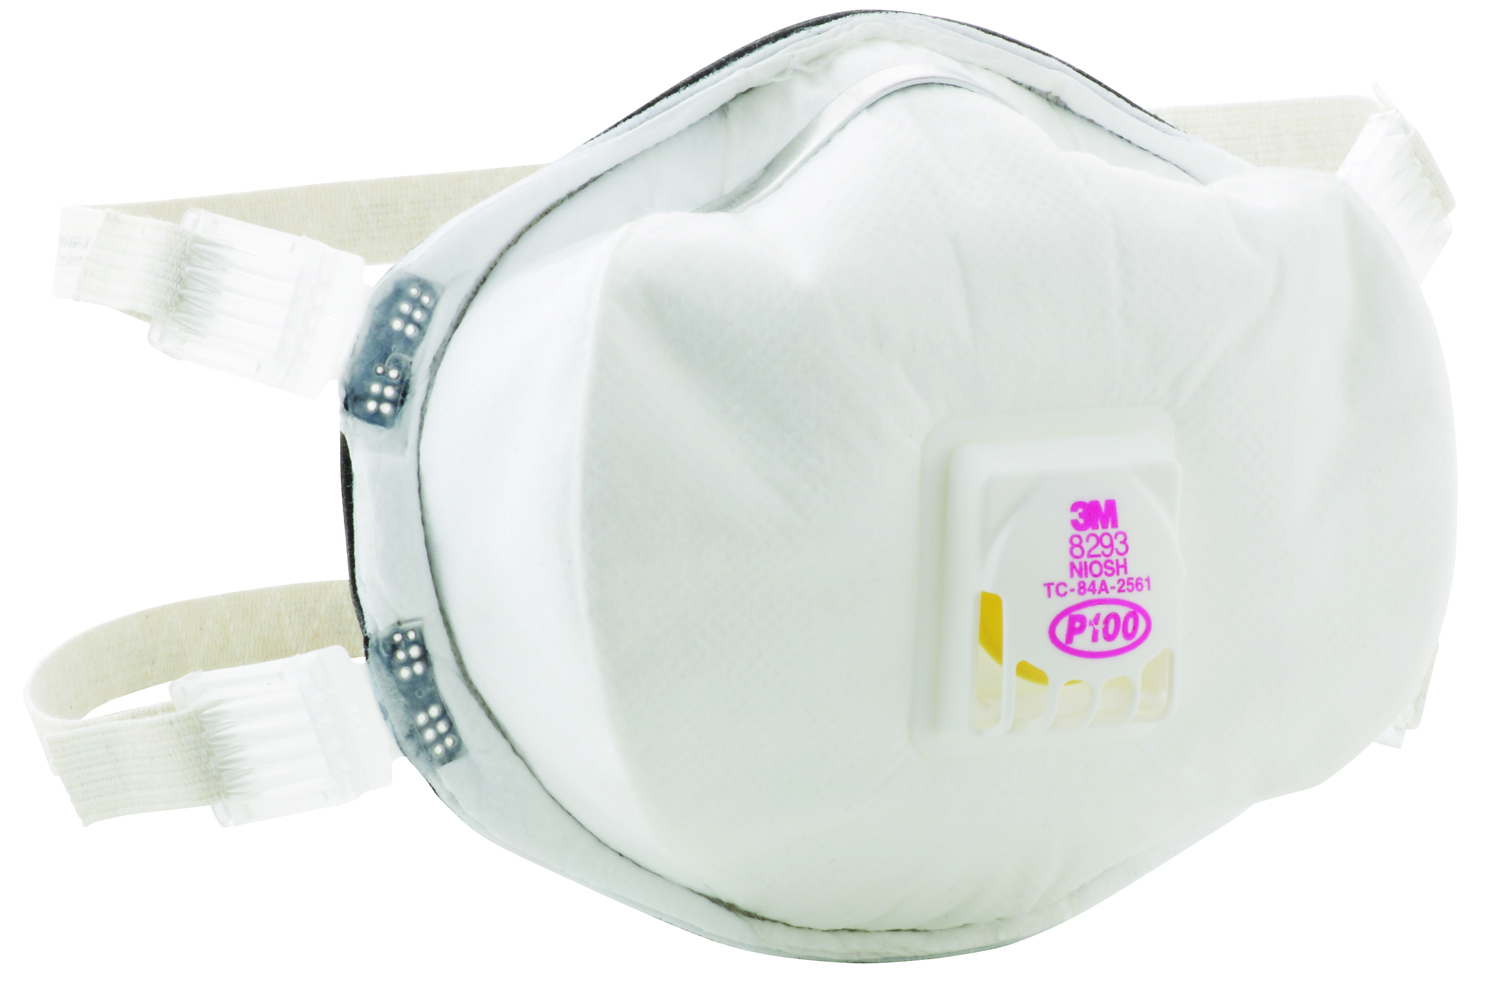 8293 - 3M Particulate Respirator 8293 P100-Disposable Particulate Respirator-P100----UOM: 1/EA